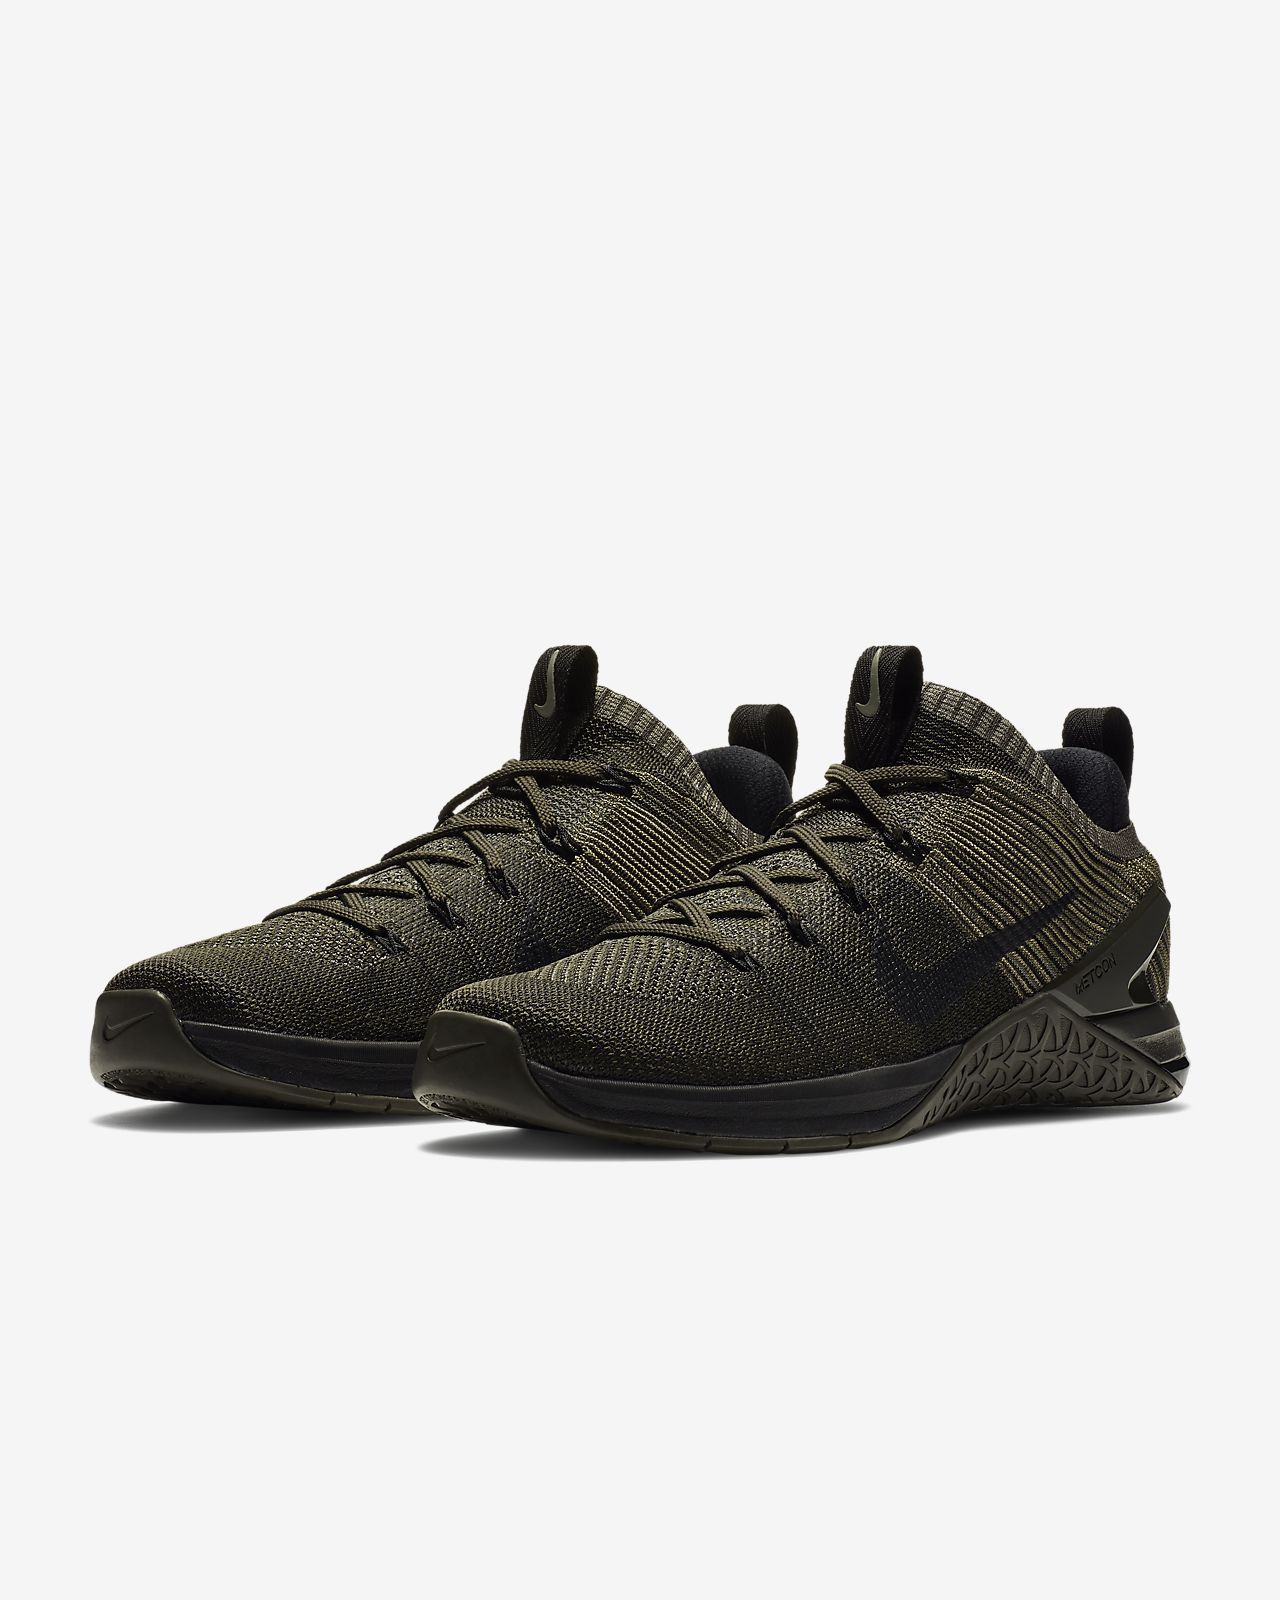 outlet store 8c175 1a157 ... Nike Metcon DSX Flyknit 2 Men's Cross Training/Weightlifting Shoe